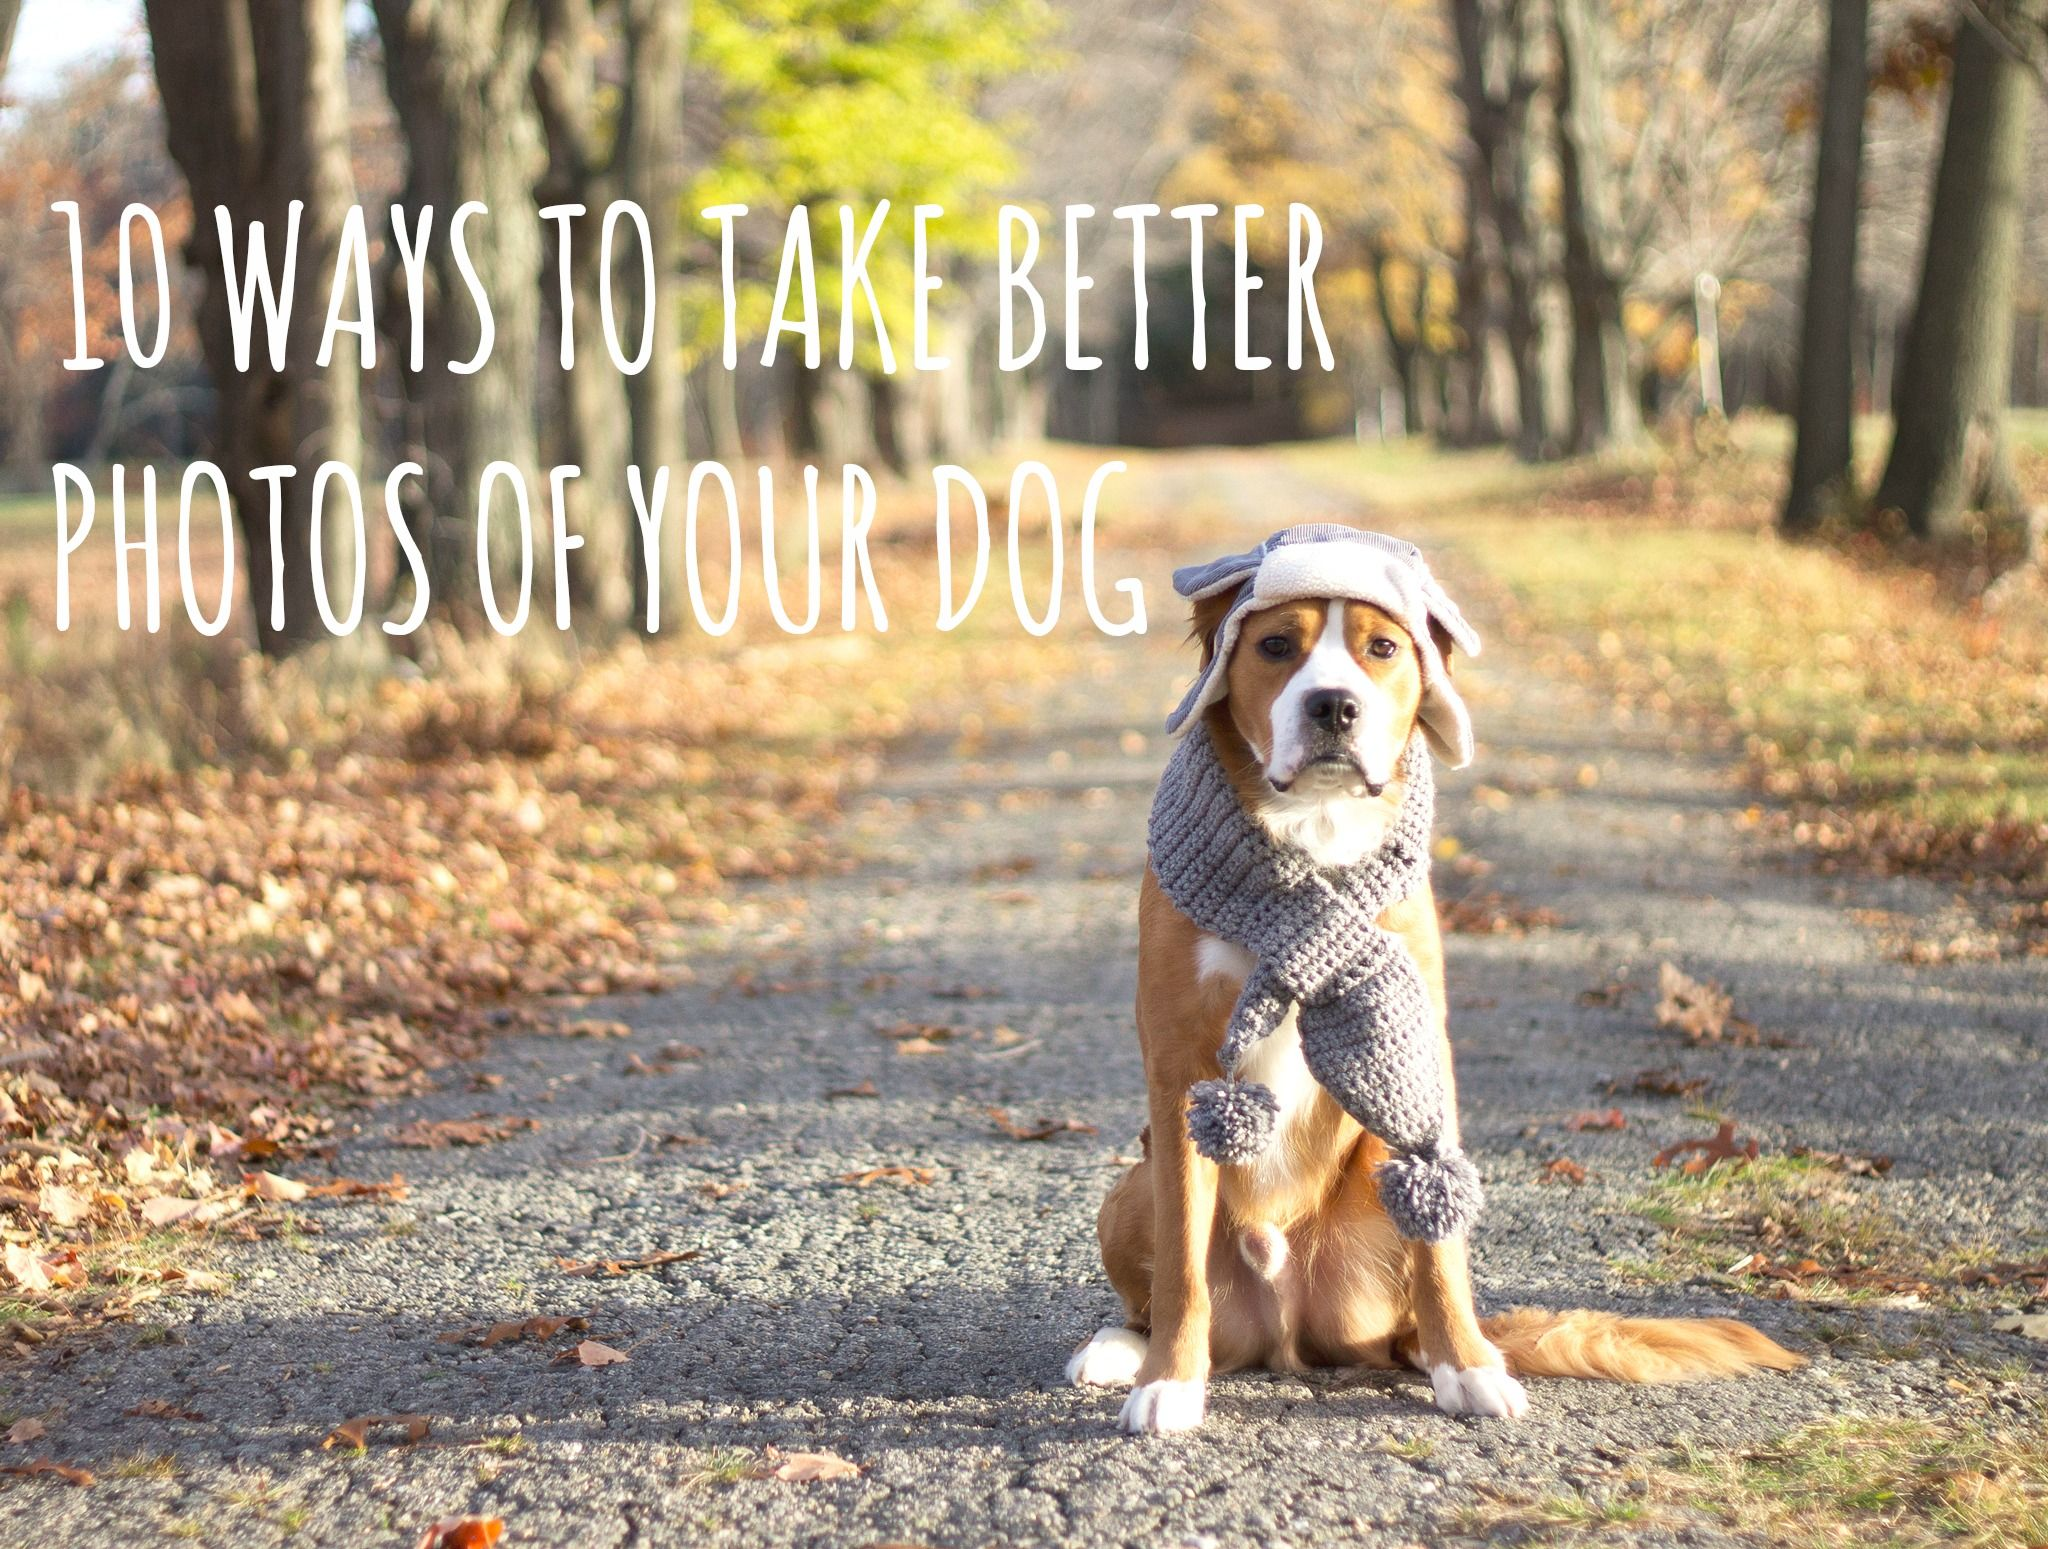 How to Take Better Animal Rescue Photos